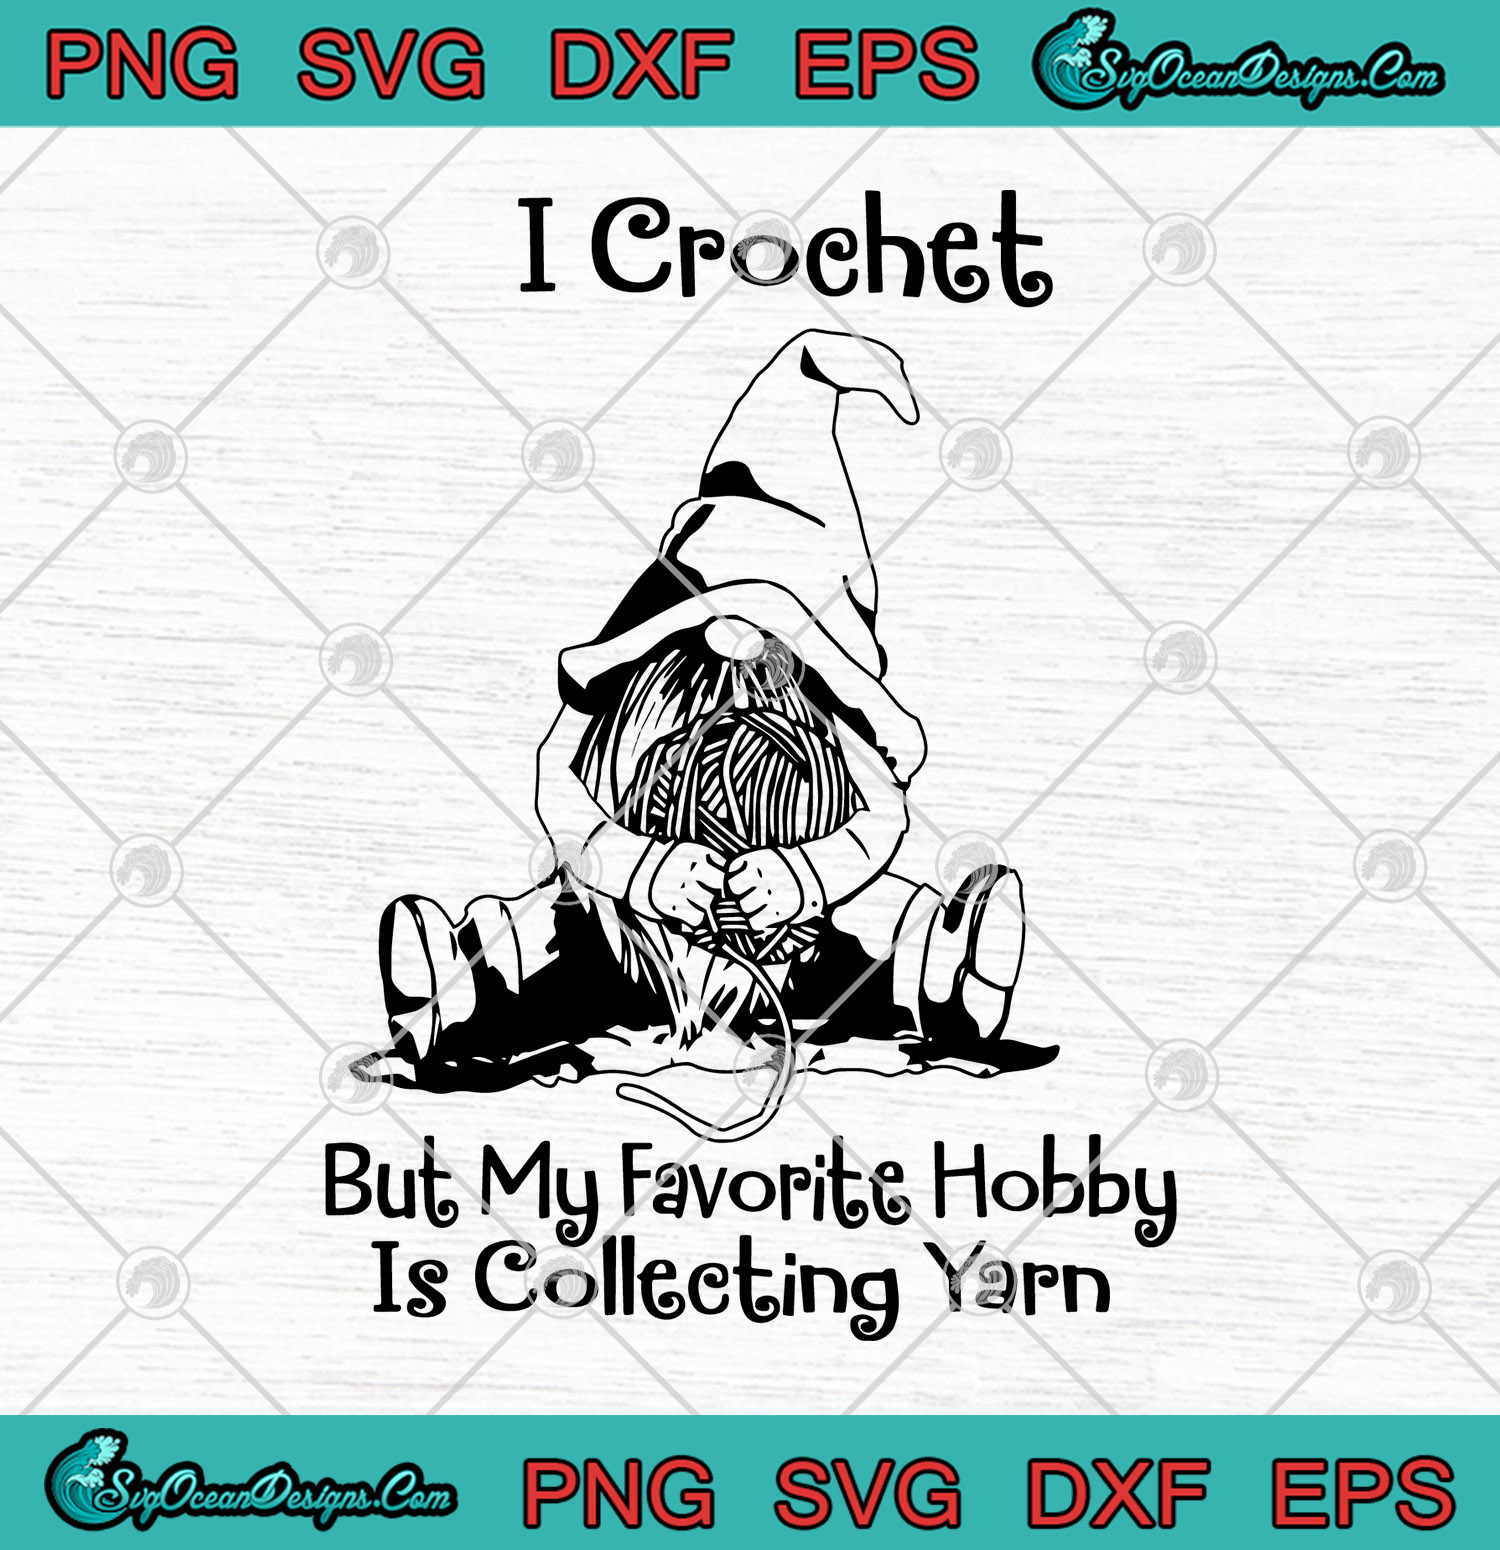 Gnomie I Crochet But My Favorite Hobby Is Collecting Yarn Svg Png Dxf Eps Gnomie Svg Cutting File Cricut Silhouette Art Designs Digital Download